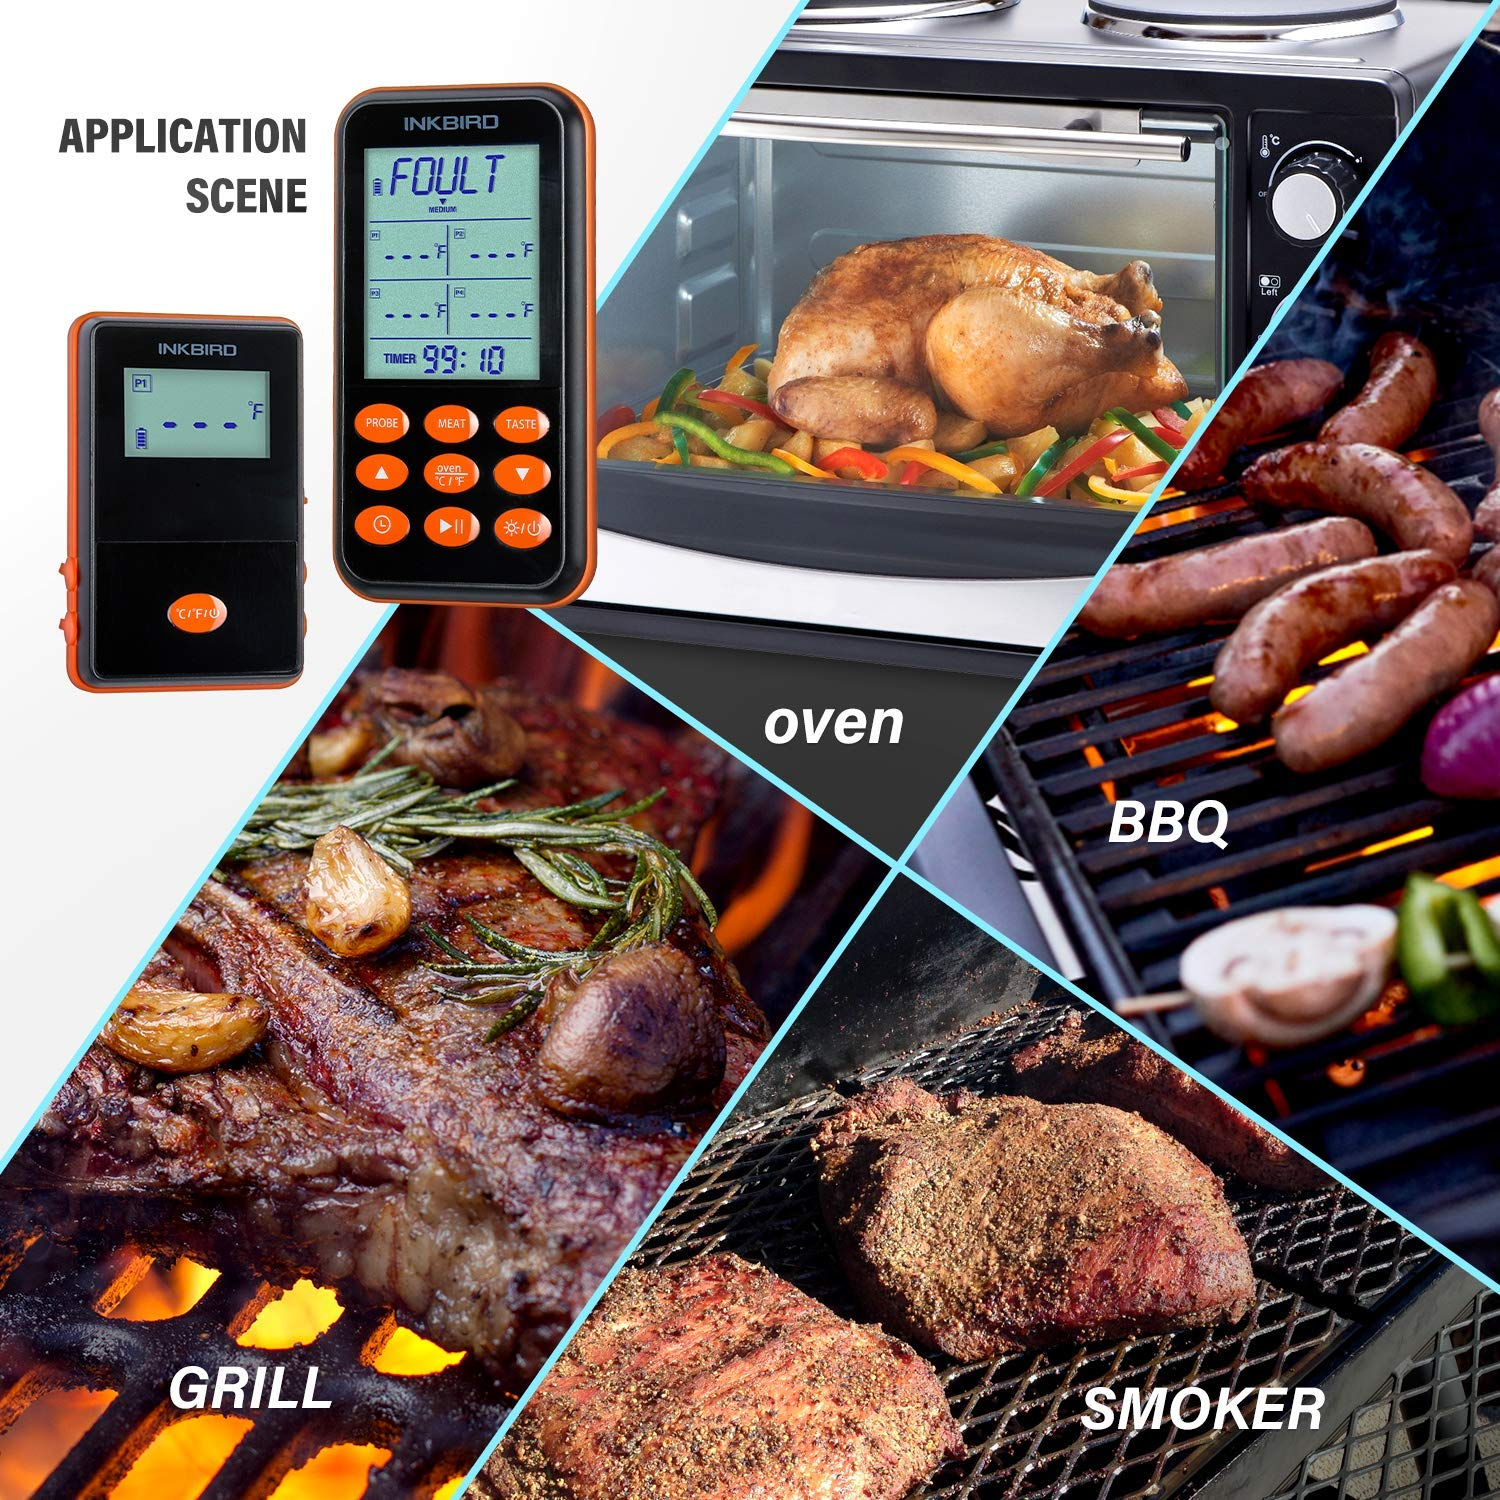 Inkbird IRF-4S 1500 Feet Waterproof Wireless BBQ Thermometer, 1000mAh Li-Battery and USB Charging Cable, Meat Grill Thermometers with Timer, Alarm for Cooking, Smoker, Barbecue (4 Probes) by Inkbird (Image #6)